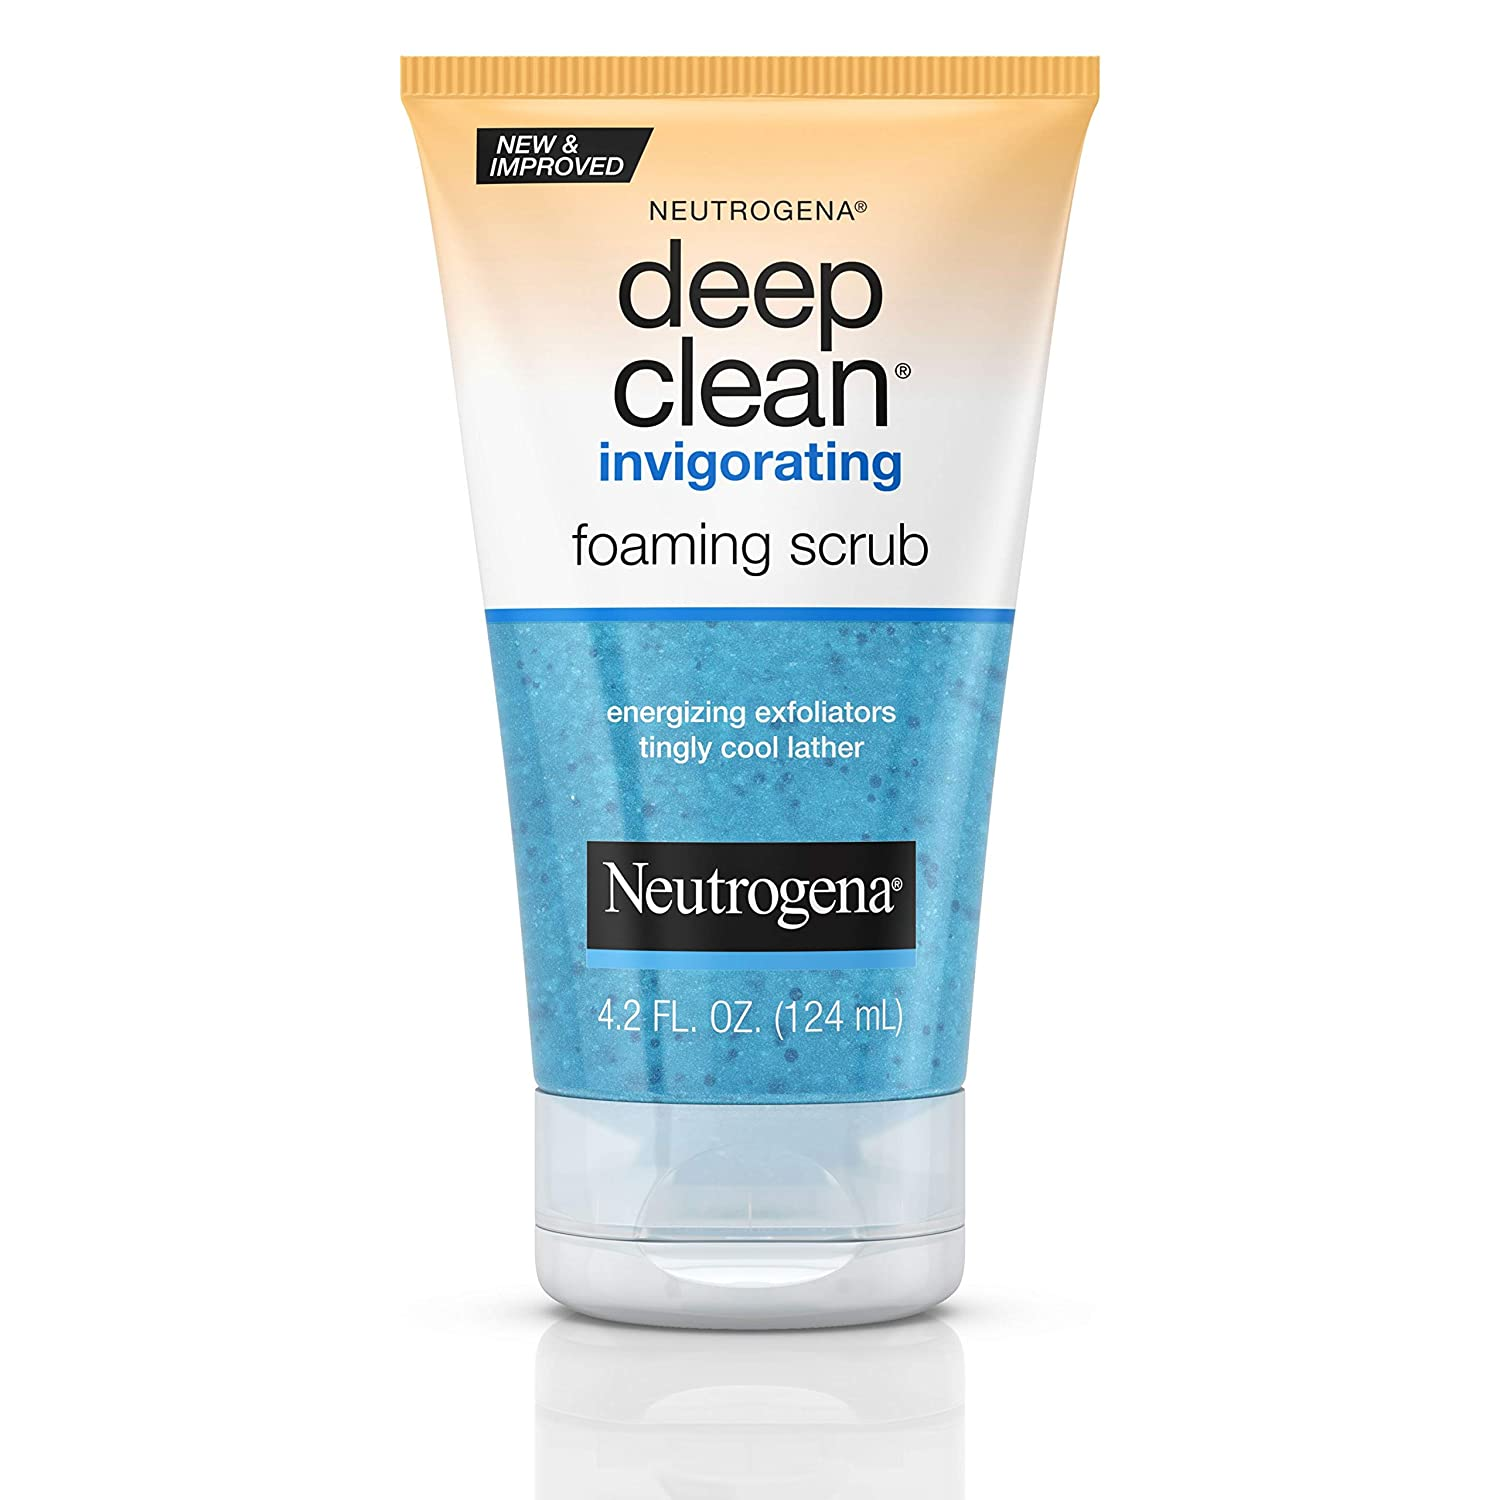 Best Face Scrubs For Acne - Neutrogena Deep Clean Invigorating Foaming Face Scrub with Glycerin, Cooling & Exfoliating Face Wash to Remove Dirt, Oil & Makeup